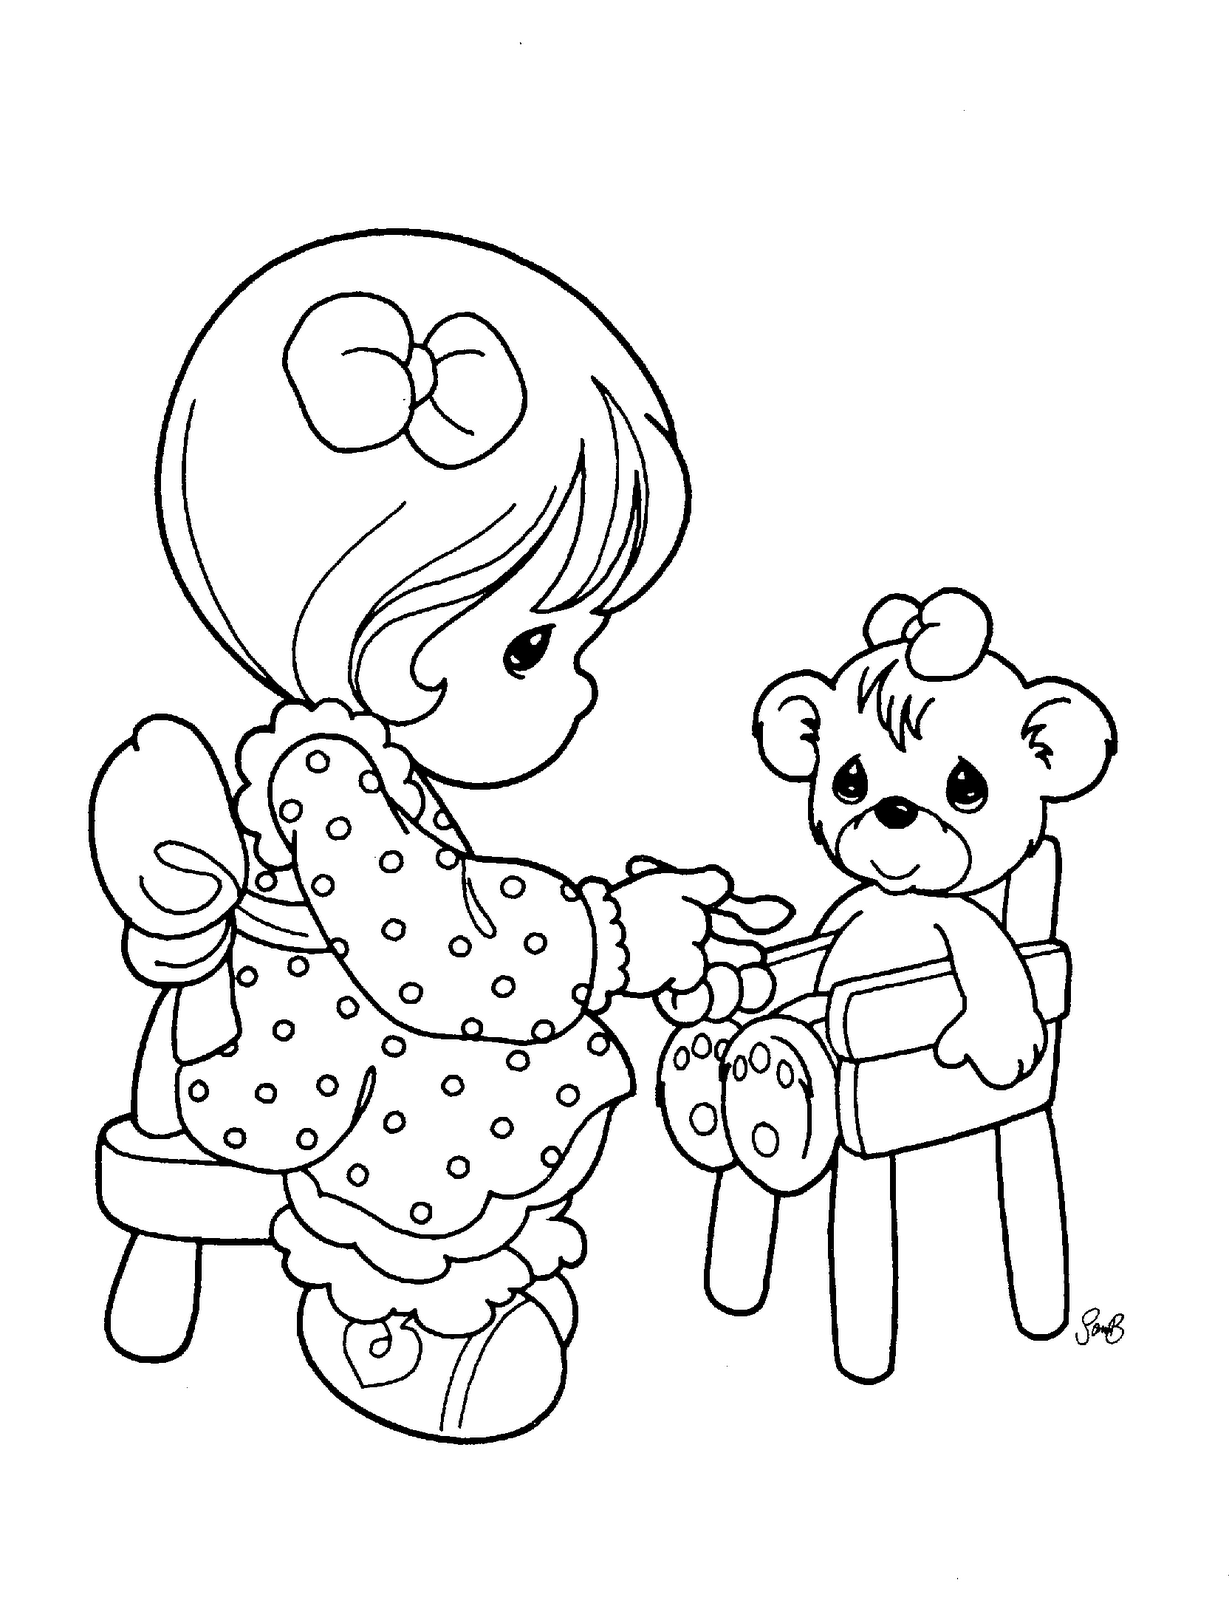 Precious Moments | Coloring Pages: Precious Moments | Pinterest | Dibujo